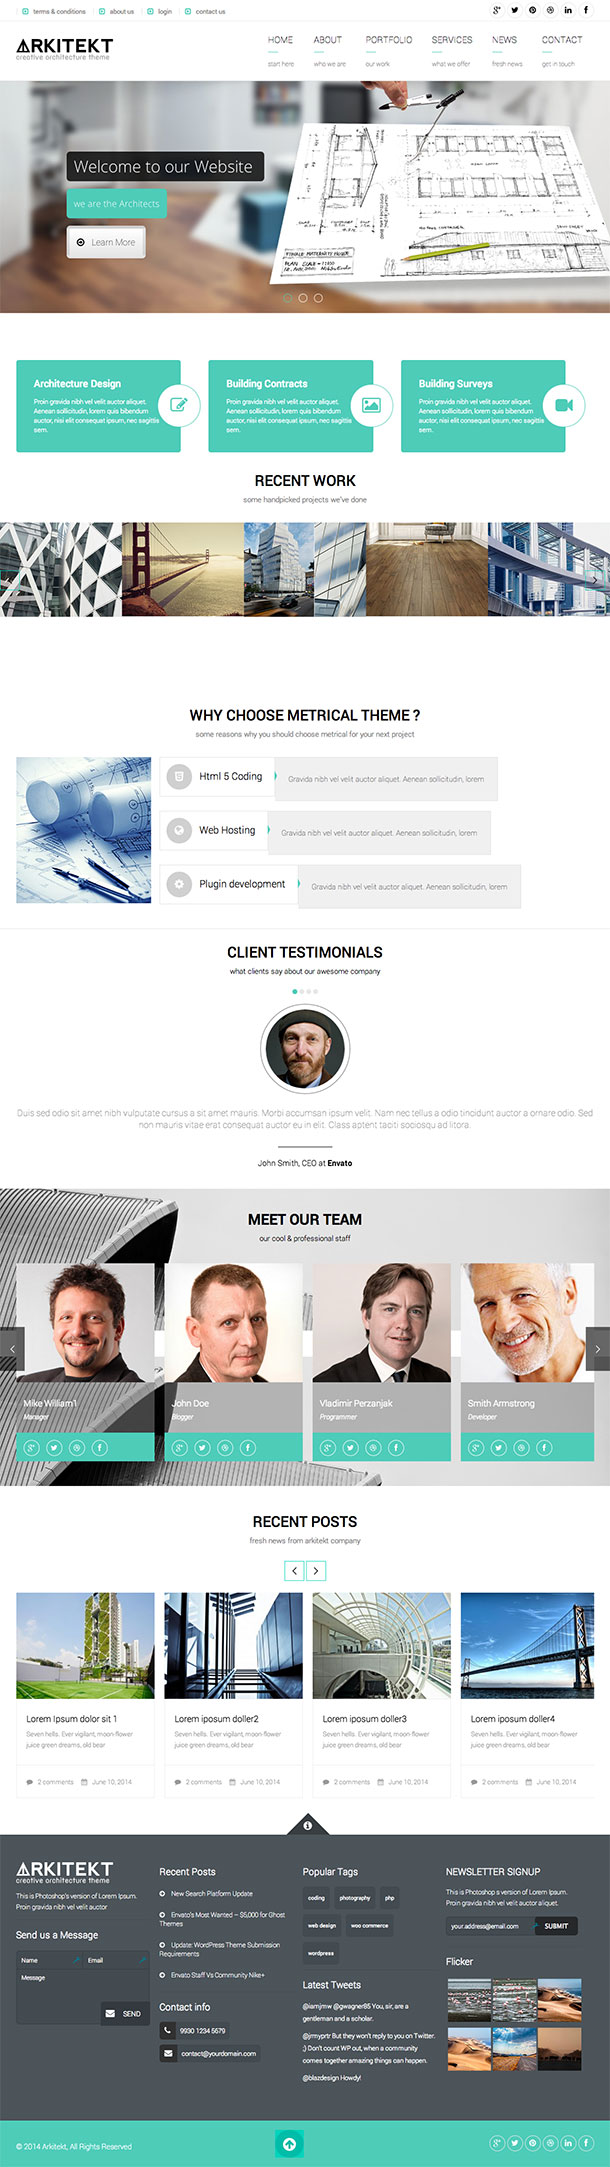 Arkitekt-Wordpress-Theme